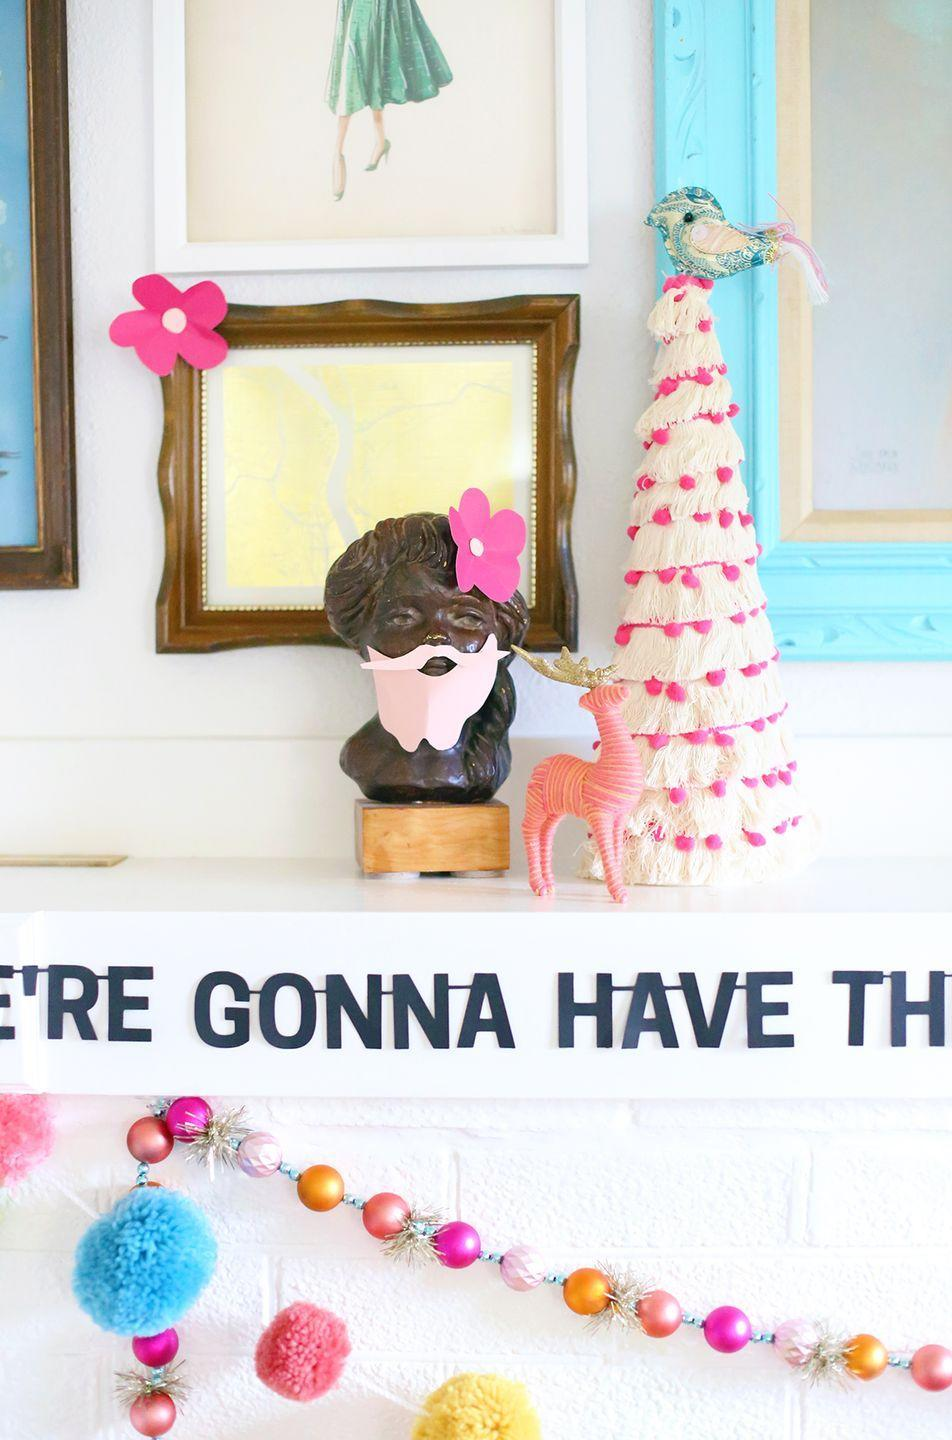 "<p>Another fun way to add a pop of texture and color to your decor? Fringed trees. The DIY won't take hours, either. All you need is a foam cone, some yarn, and a little hot glue. </p><p><em>Get the tutorial at <a href=""https://thepapermama.com/2017/11/hap-hap-happiest-christmas-banner/"" rel=""nofollow noopener"" target=""_blank"" data-ylk=""slk:The Paper Mama"" class=""link rapid-noclick-resp"">The Paper Mama</a>.</em></p><p><a class=""link rapid-noclick-resp"" href=""https://www.amazon.com/Craft-Foam-Cone-Centerpiece-Polystyrene/dp/B07C97HKKH?tag=syn-yahoo-20&ascsubtag=%5Bartid%7C10072.g.34484299%5Bsrc%7Cyahoo-us"" rel=""nofollow noopener"" target=""_blank"" data-ylk=""slk:SHOP FOAM CONES"">SHOP FOAM CONES</a></p>"